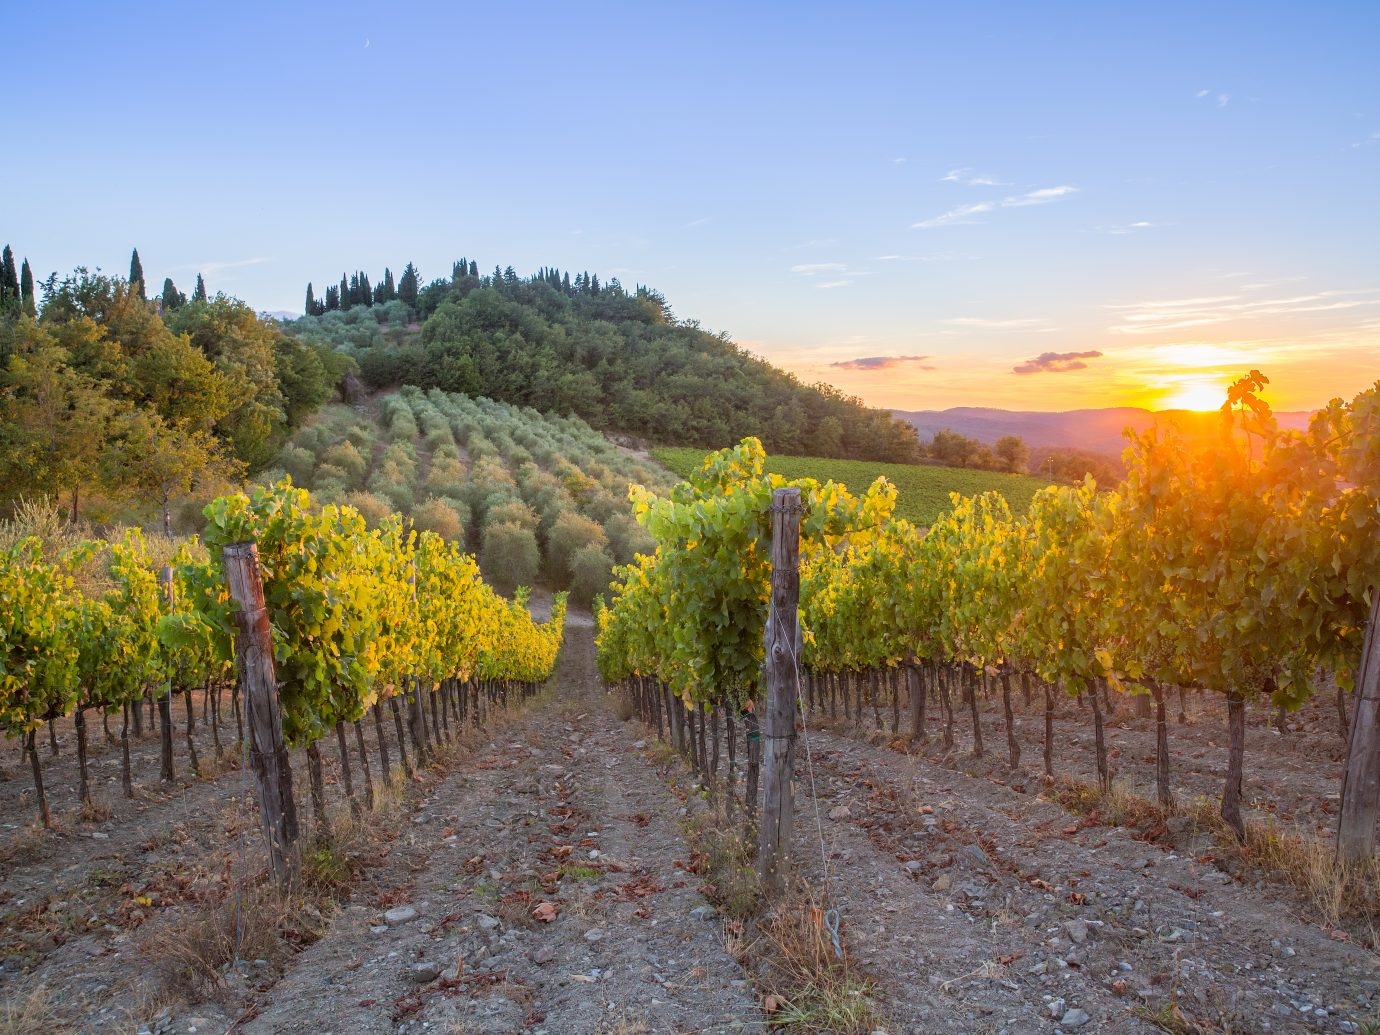 Last rays of sun over vineyards and olive trees in the Chianti region, Tuscany, Italy.